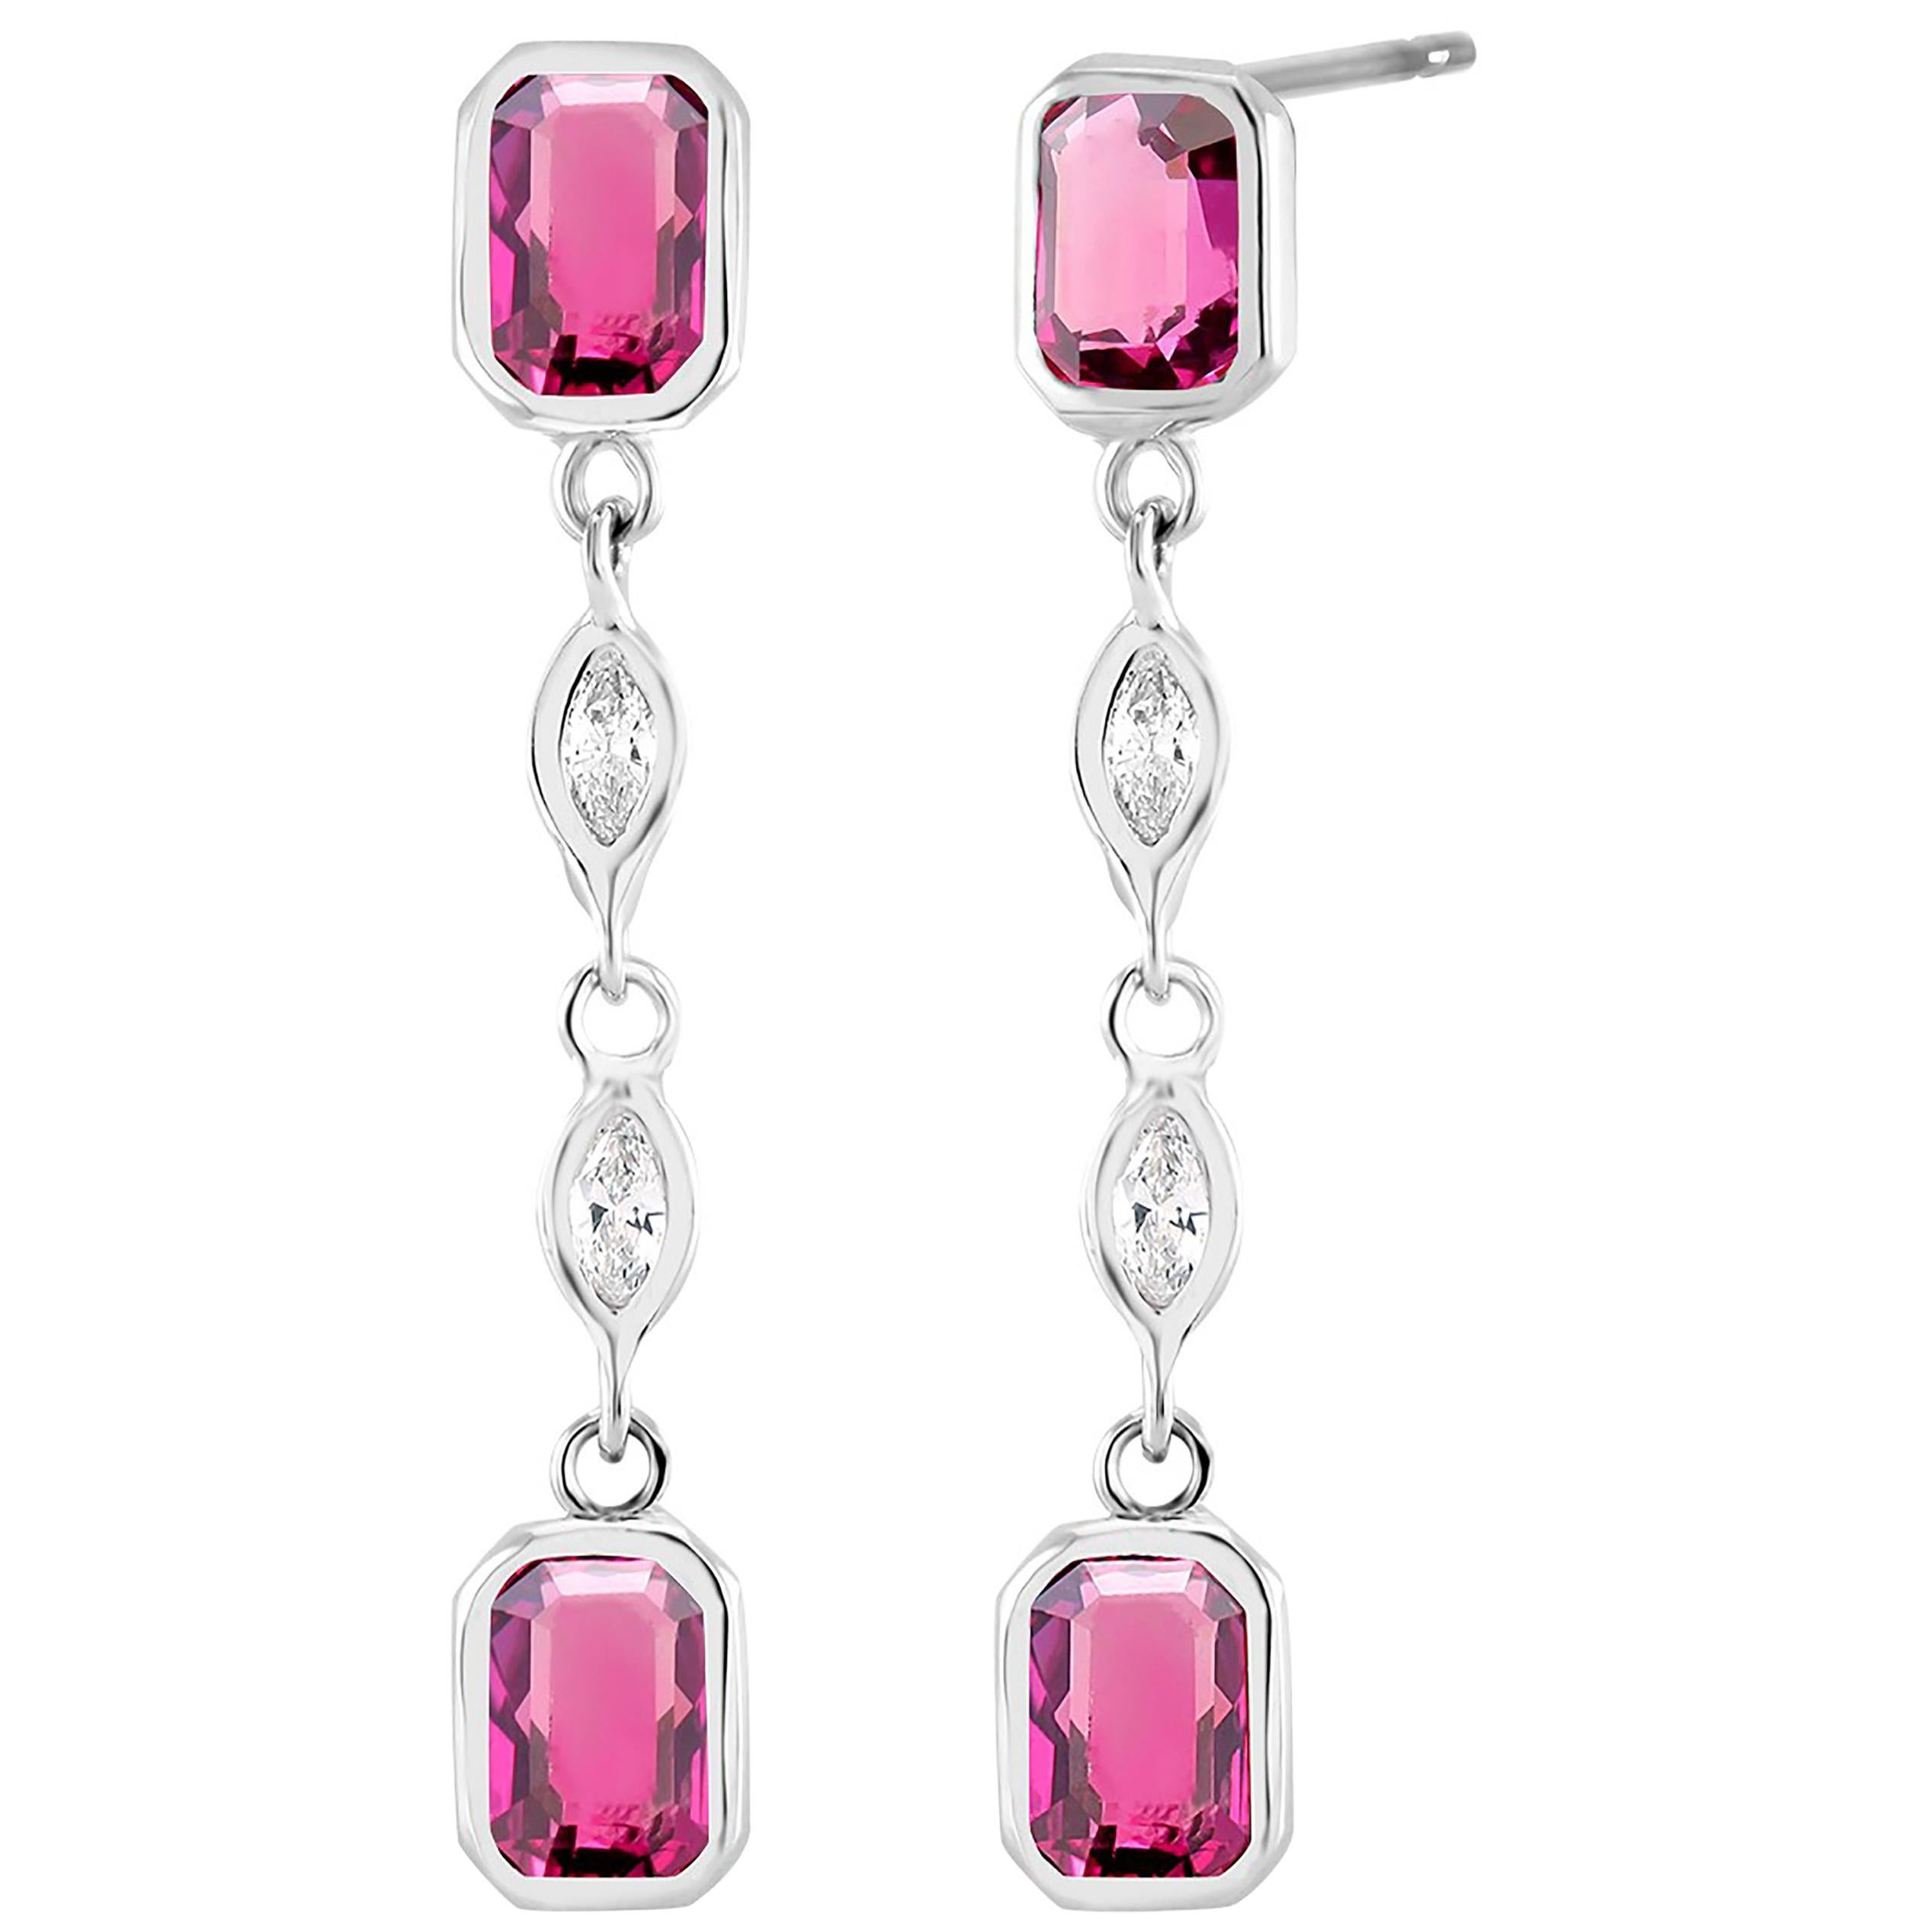 Four Marquise Diamond and Four Emerald Shaped Ruby Drop Earrings